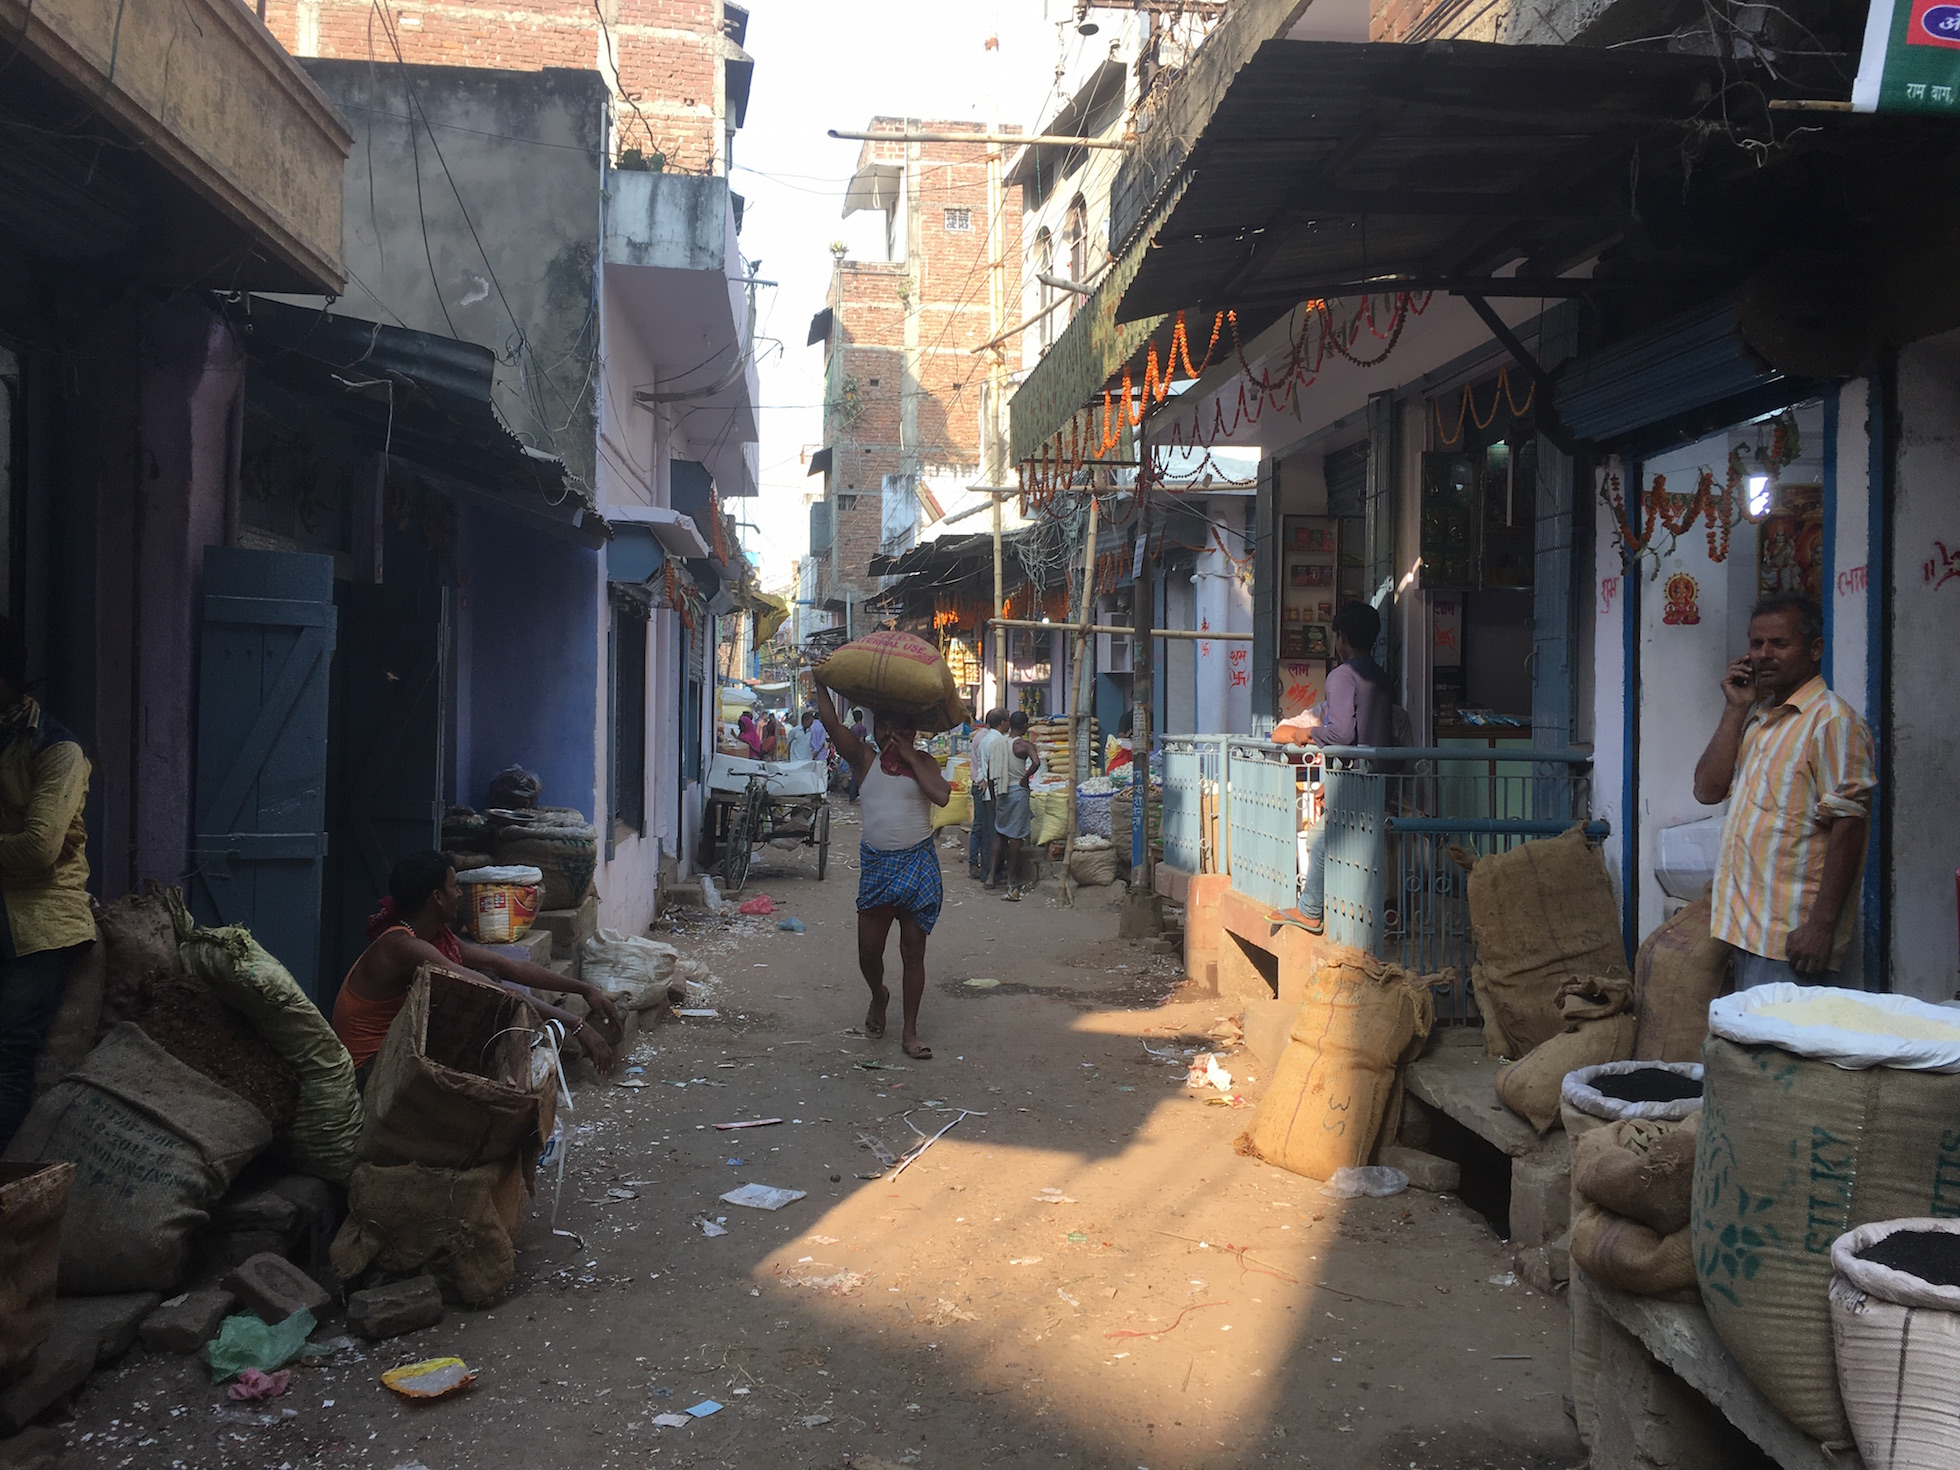 The empty streets in Patna's Maroofganj mandi. Photo: M Rajshekhar